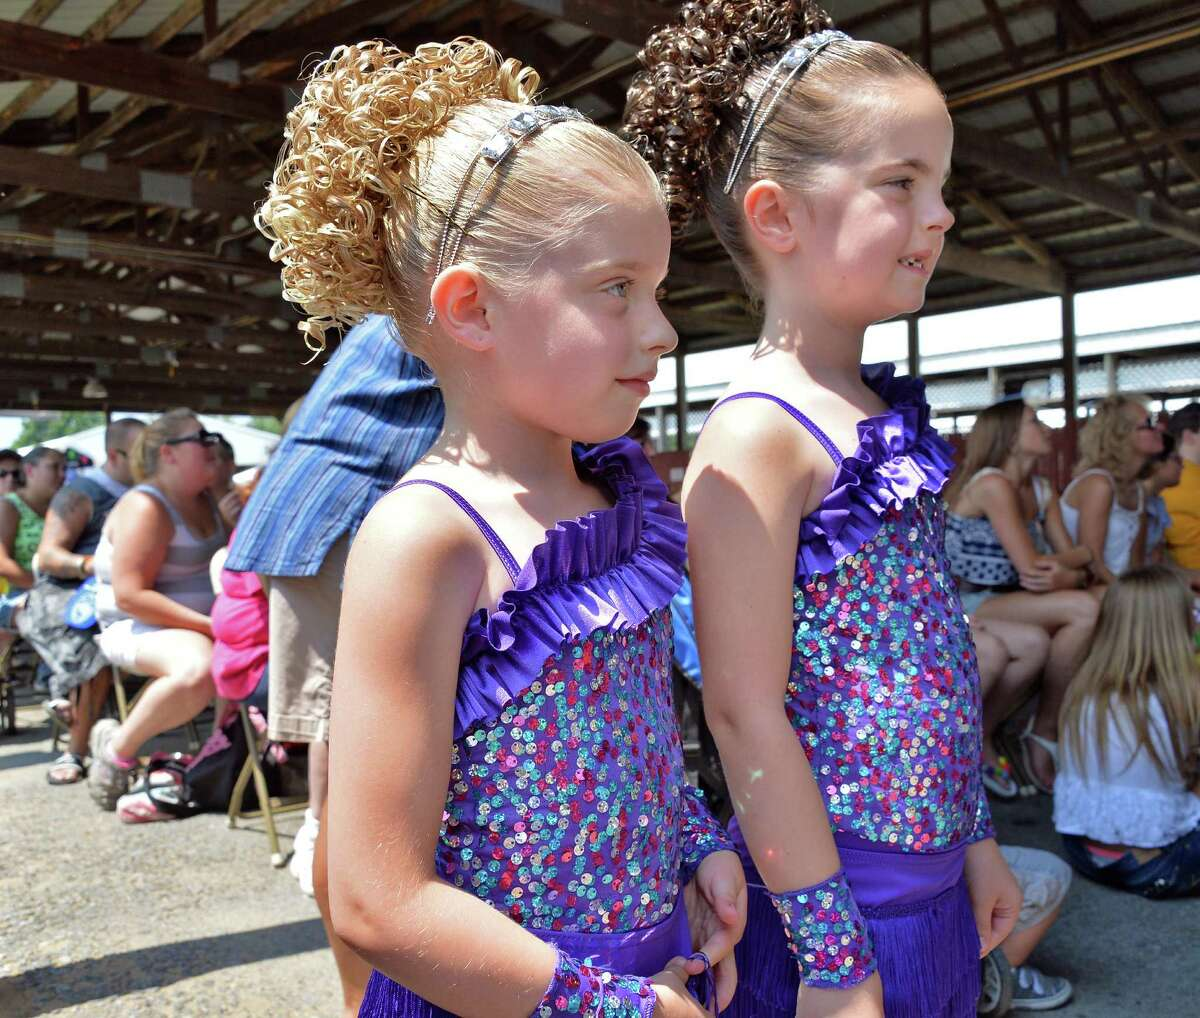 Emily Hye, 5, left, and Alyson O'Connor,6, of Ballston Spa watch the competition as they wait their turn in the under 7 talent show on opening day of the Saratoga County Fair Tuesday July 22, 2014, in Ballston Spa, NY. (John Carl D'Annibale / Times Union)